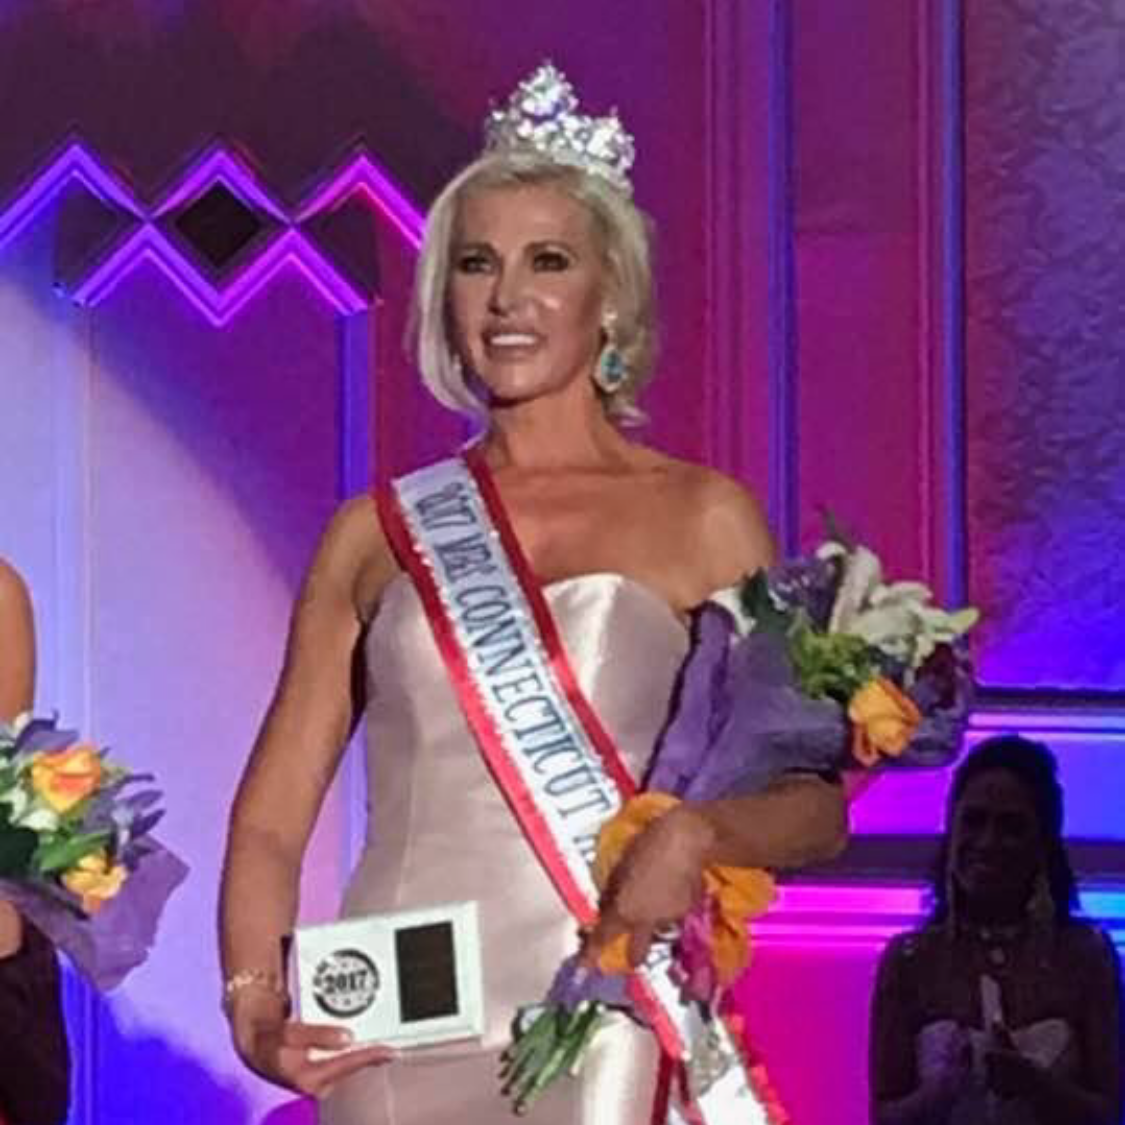 GREENWICH WOMAN WINS MRS. CT AMERICA 2017  MAY 18, 2017    SEE ARTICLE